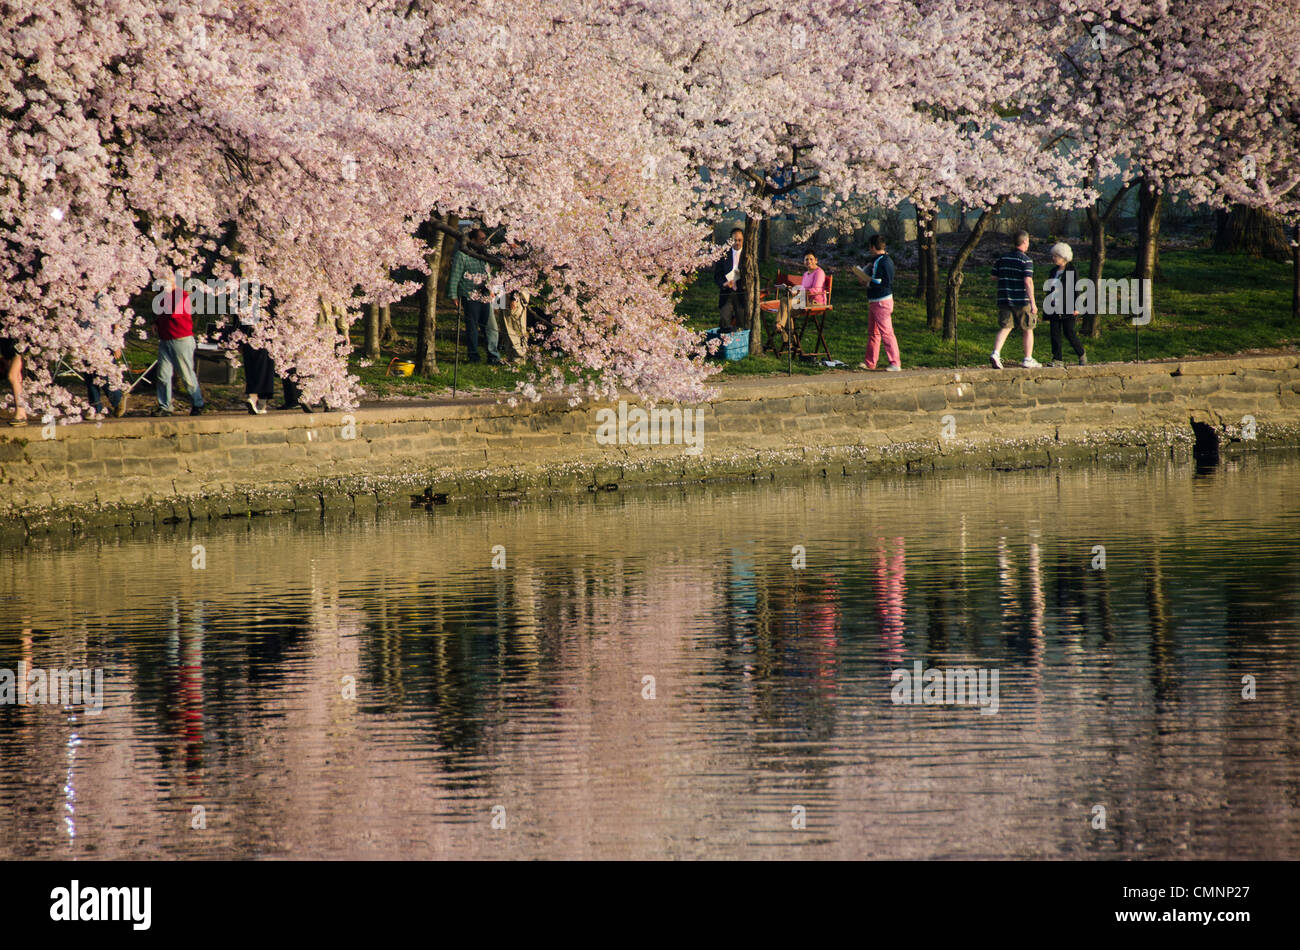 People along the edge of the Tidal Basin under the Cherry Blossoms. The Yoshino Cherry Blossom trees lining the - Stock Image